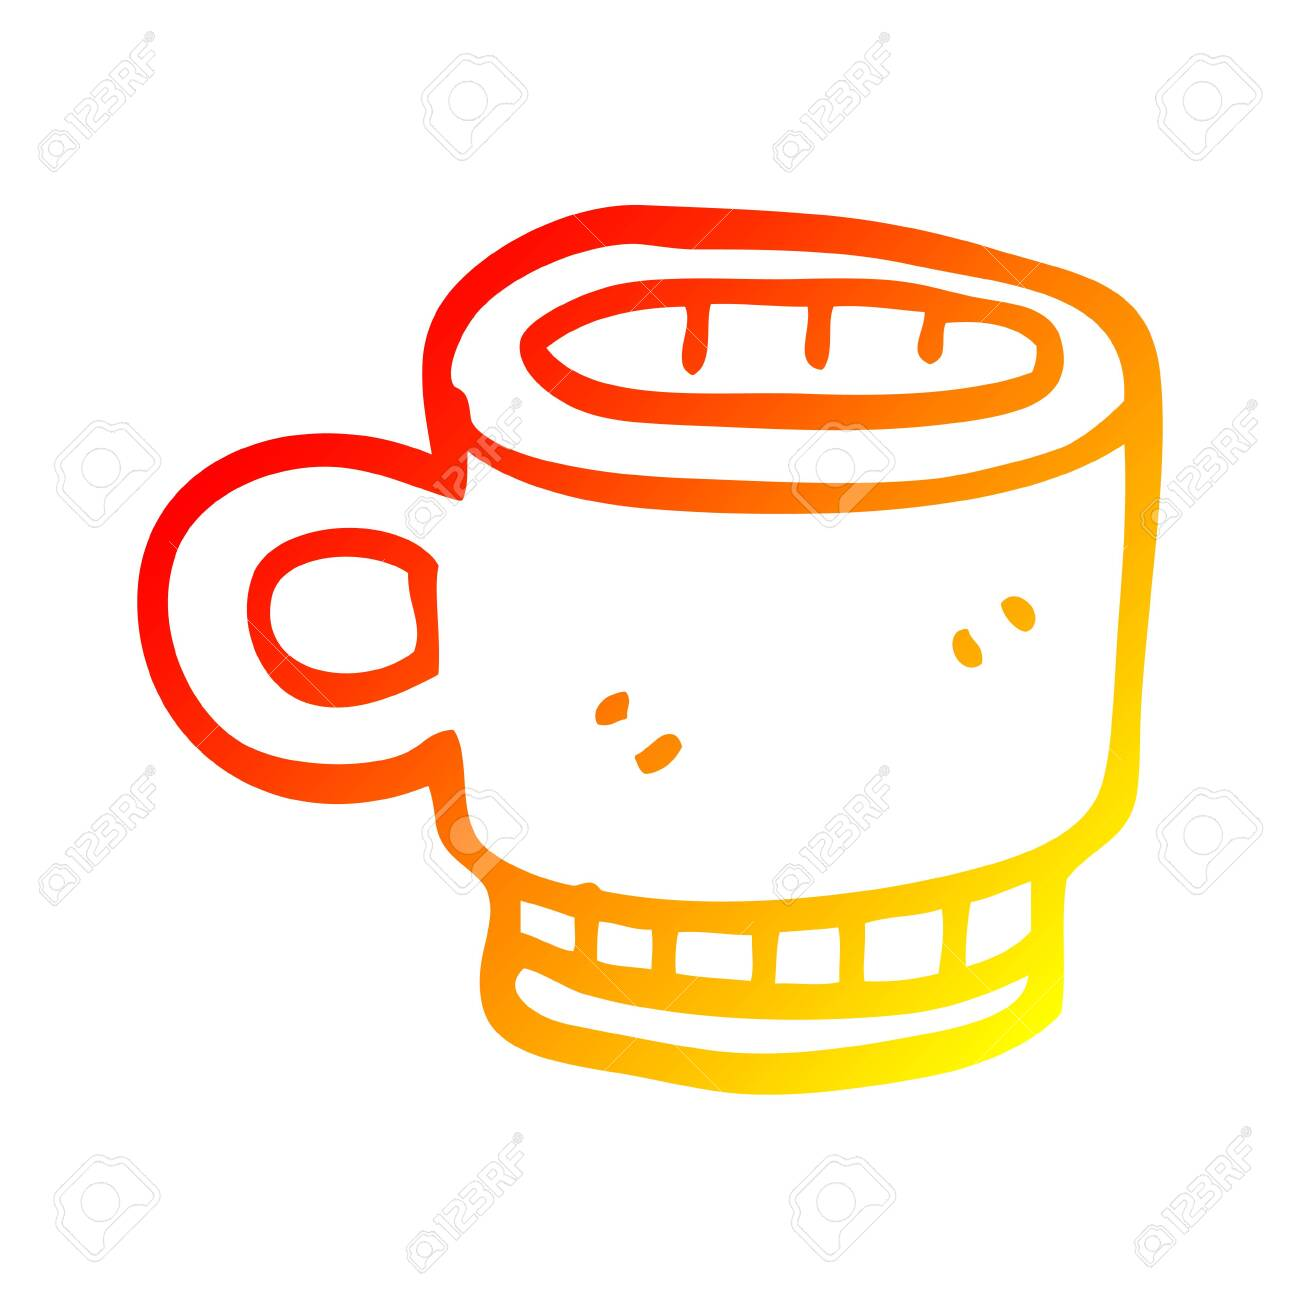 Warm Gradient Line Drawing Of A Cartoon Coffee Mug Royalty Free Cliparts Vectors And Stock Illustration Image 130200716